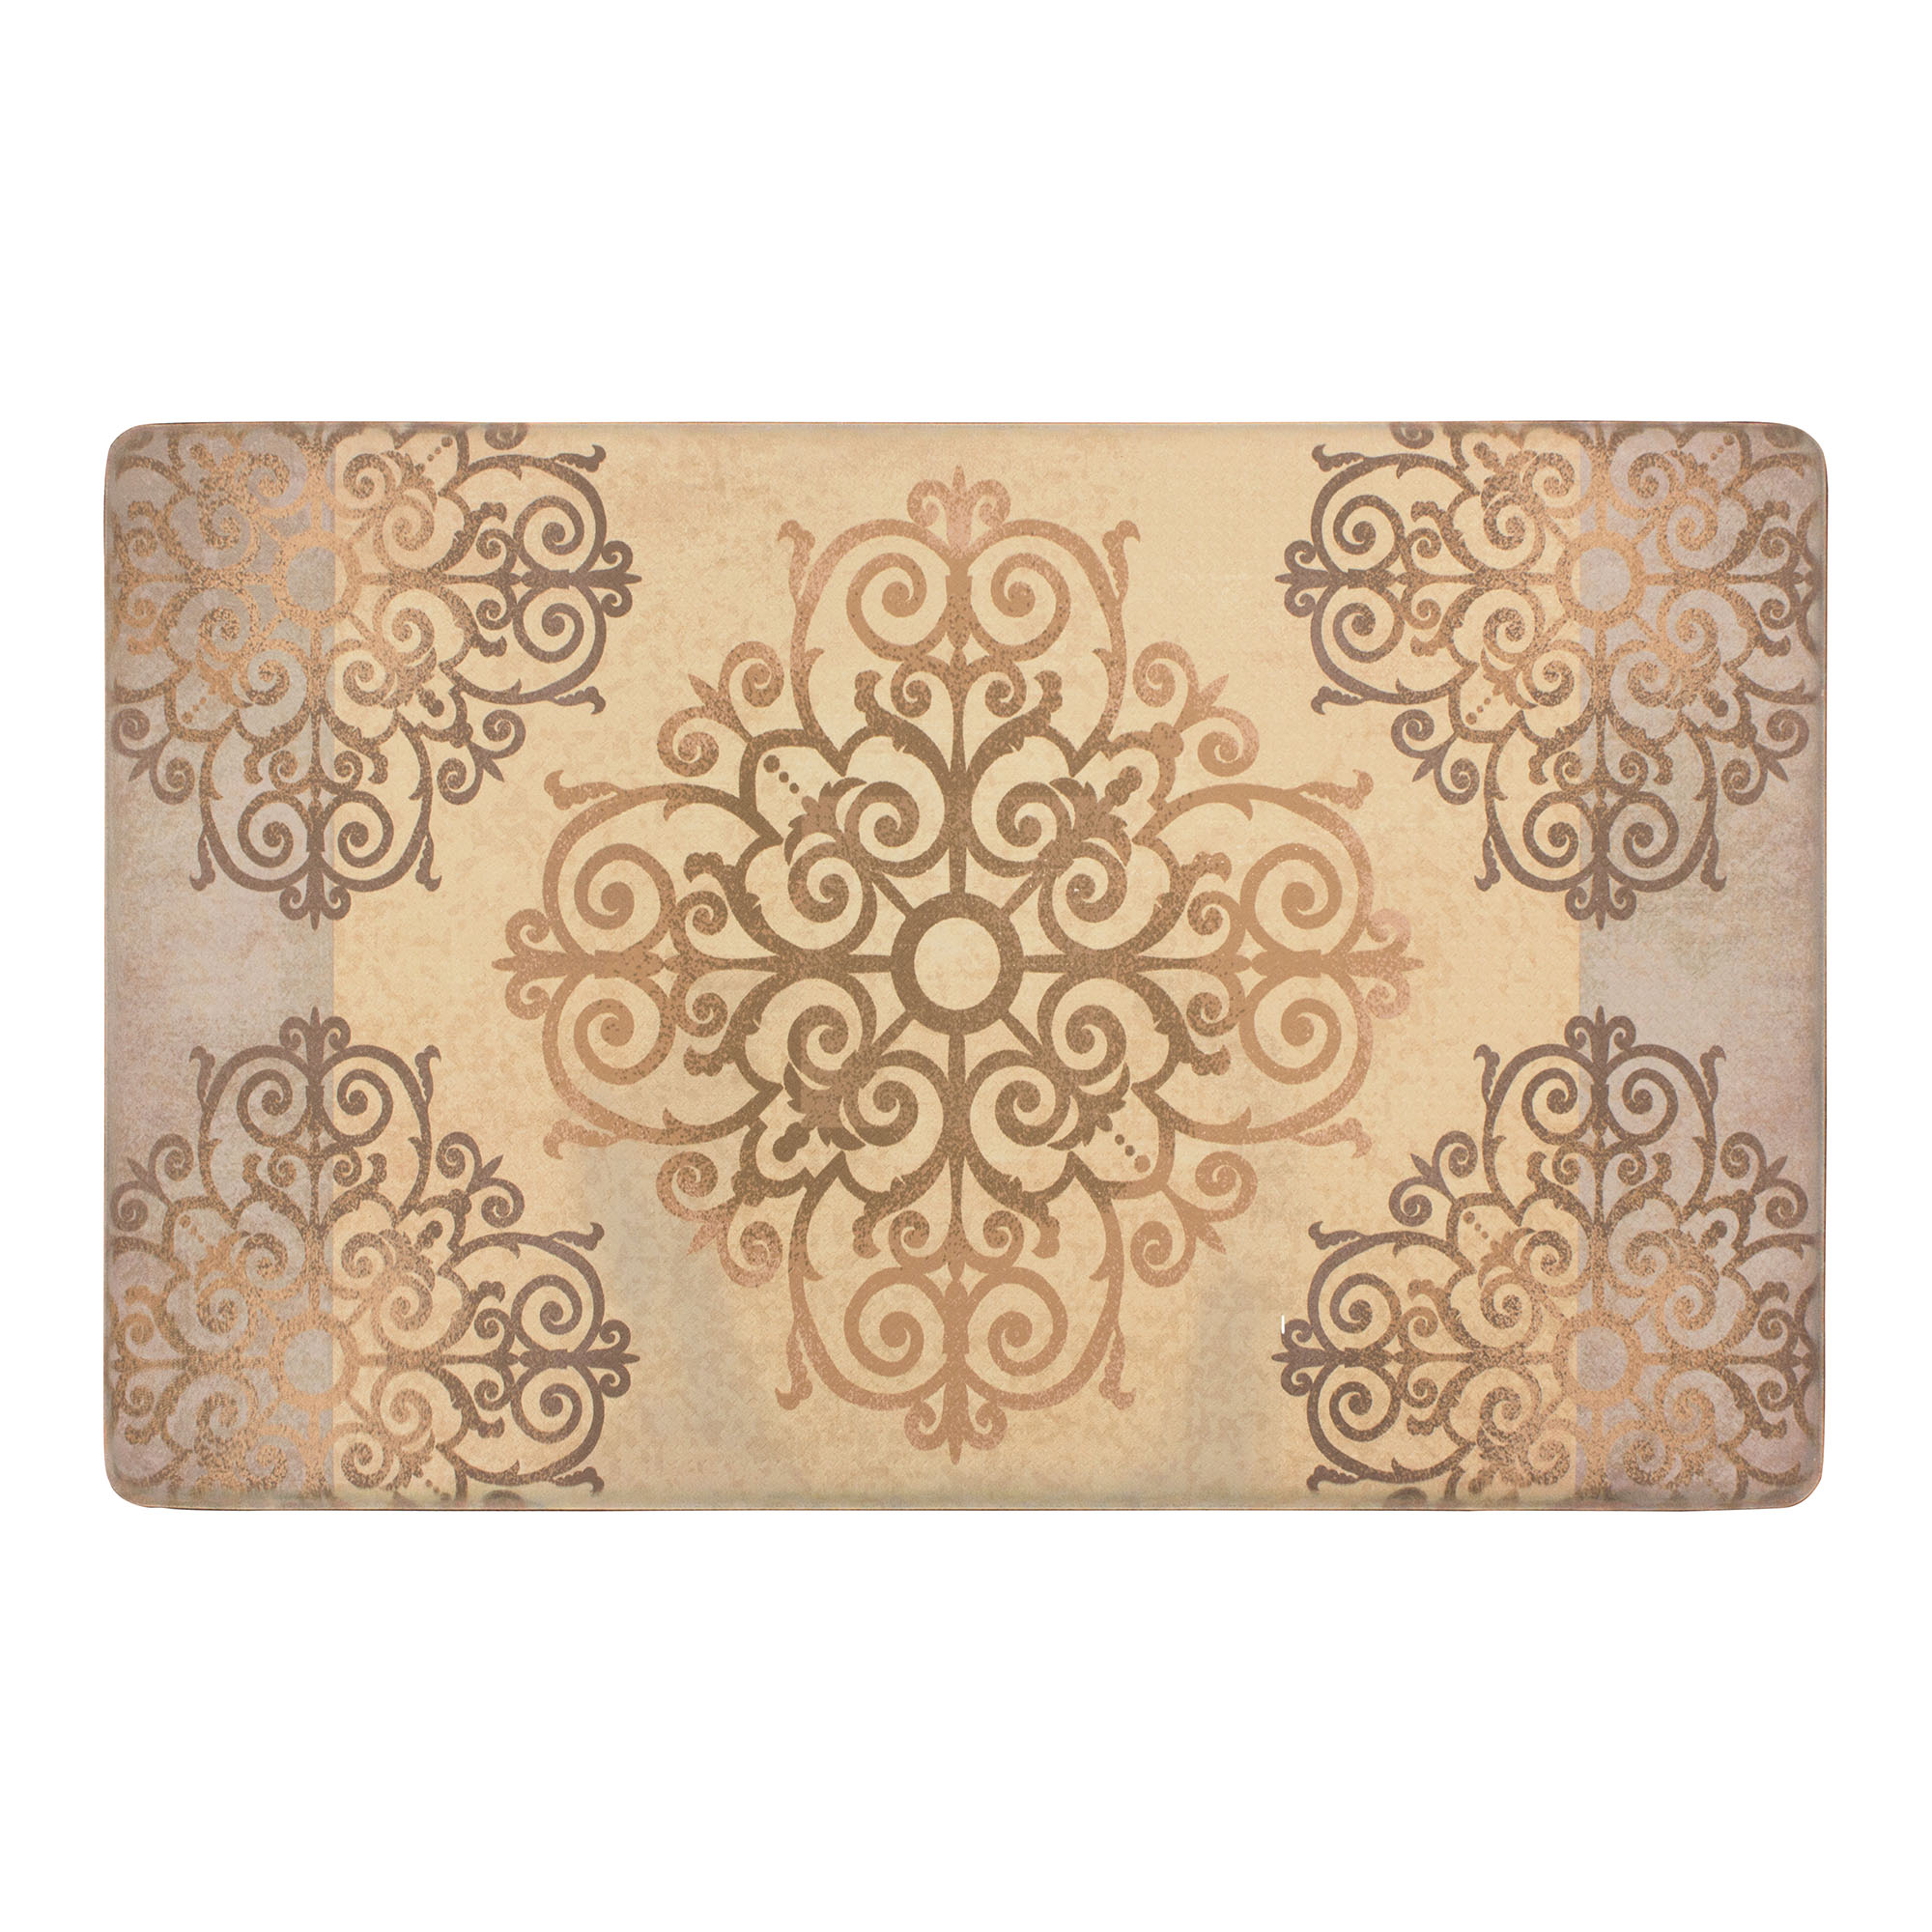 Chef Gear Elroya 20 x 32 in. Gelness Mat, Beige